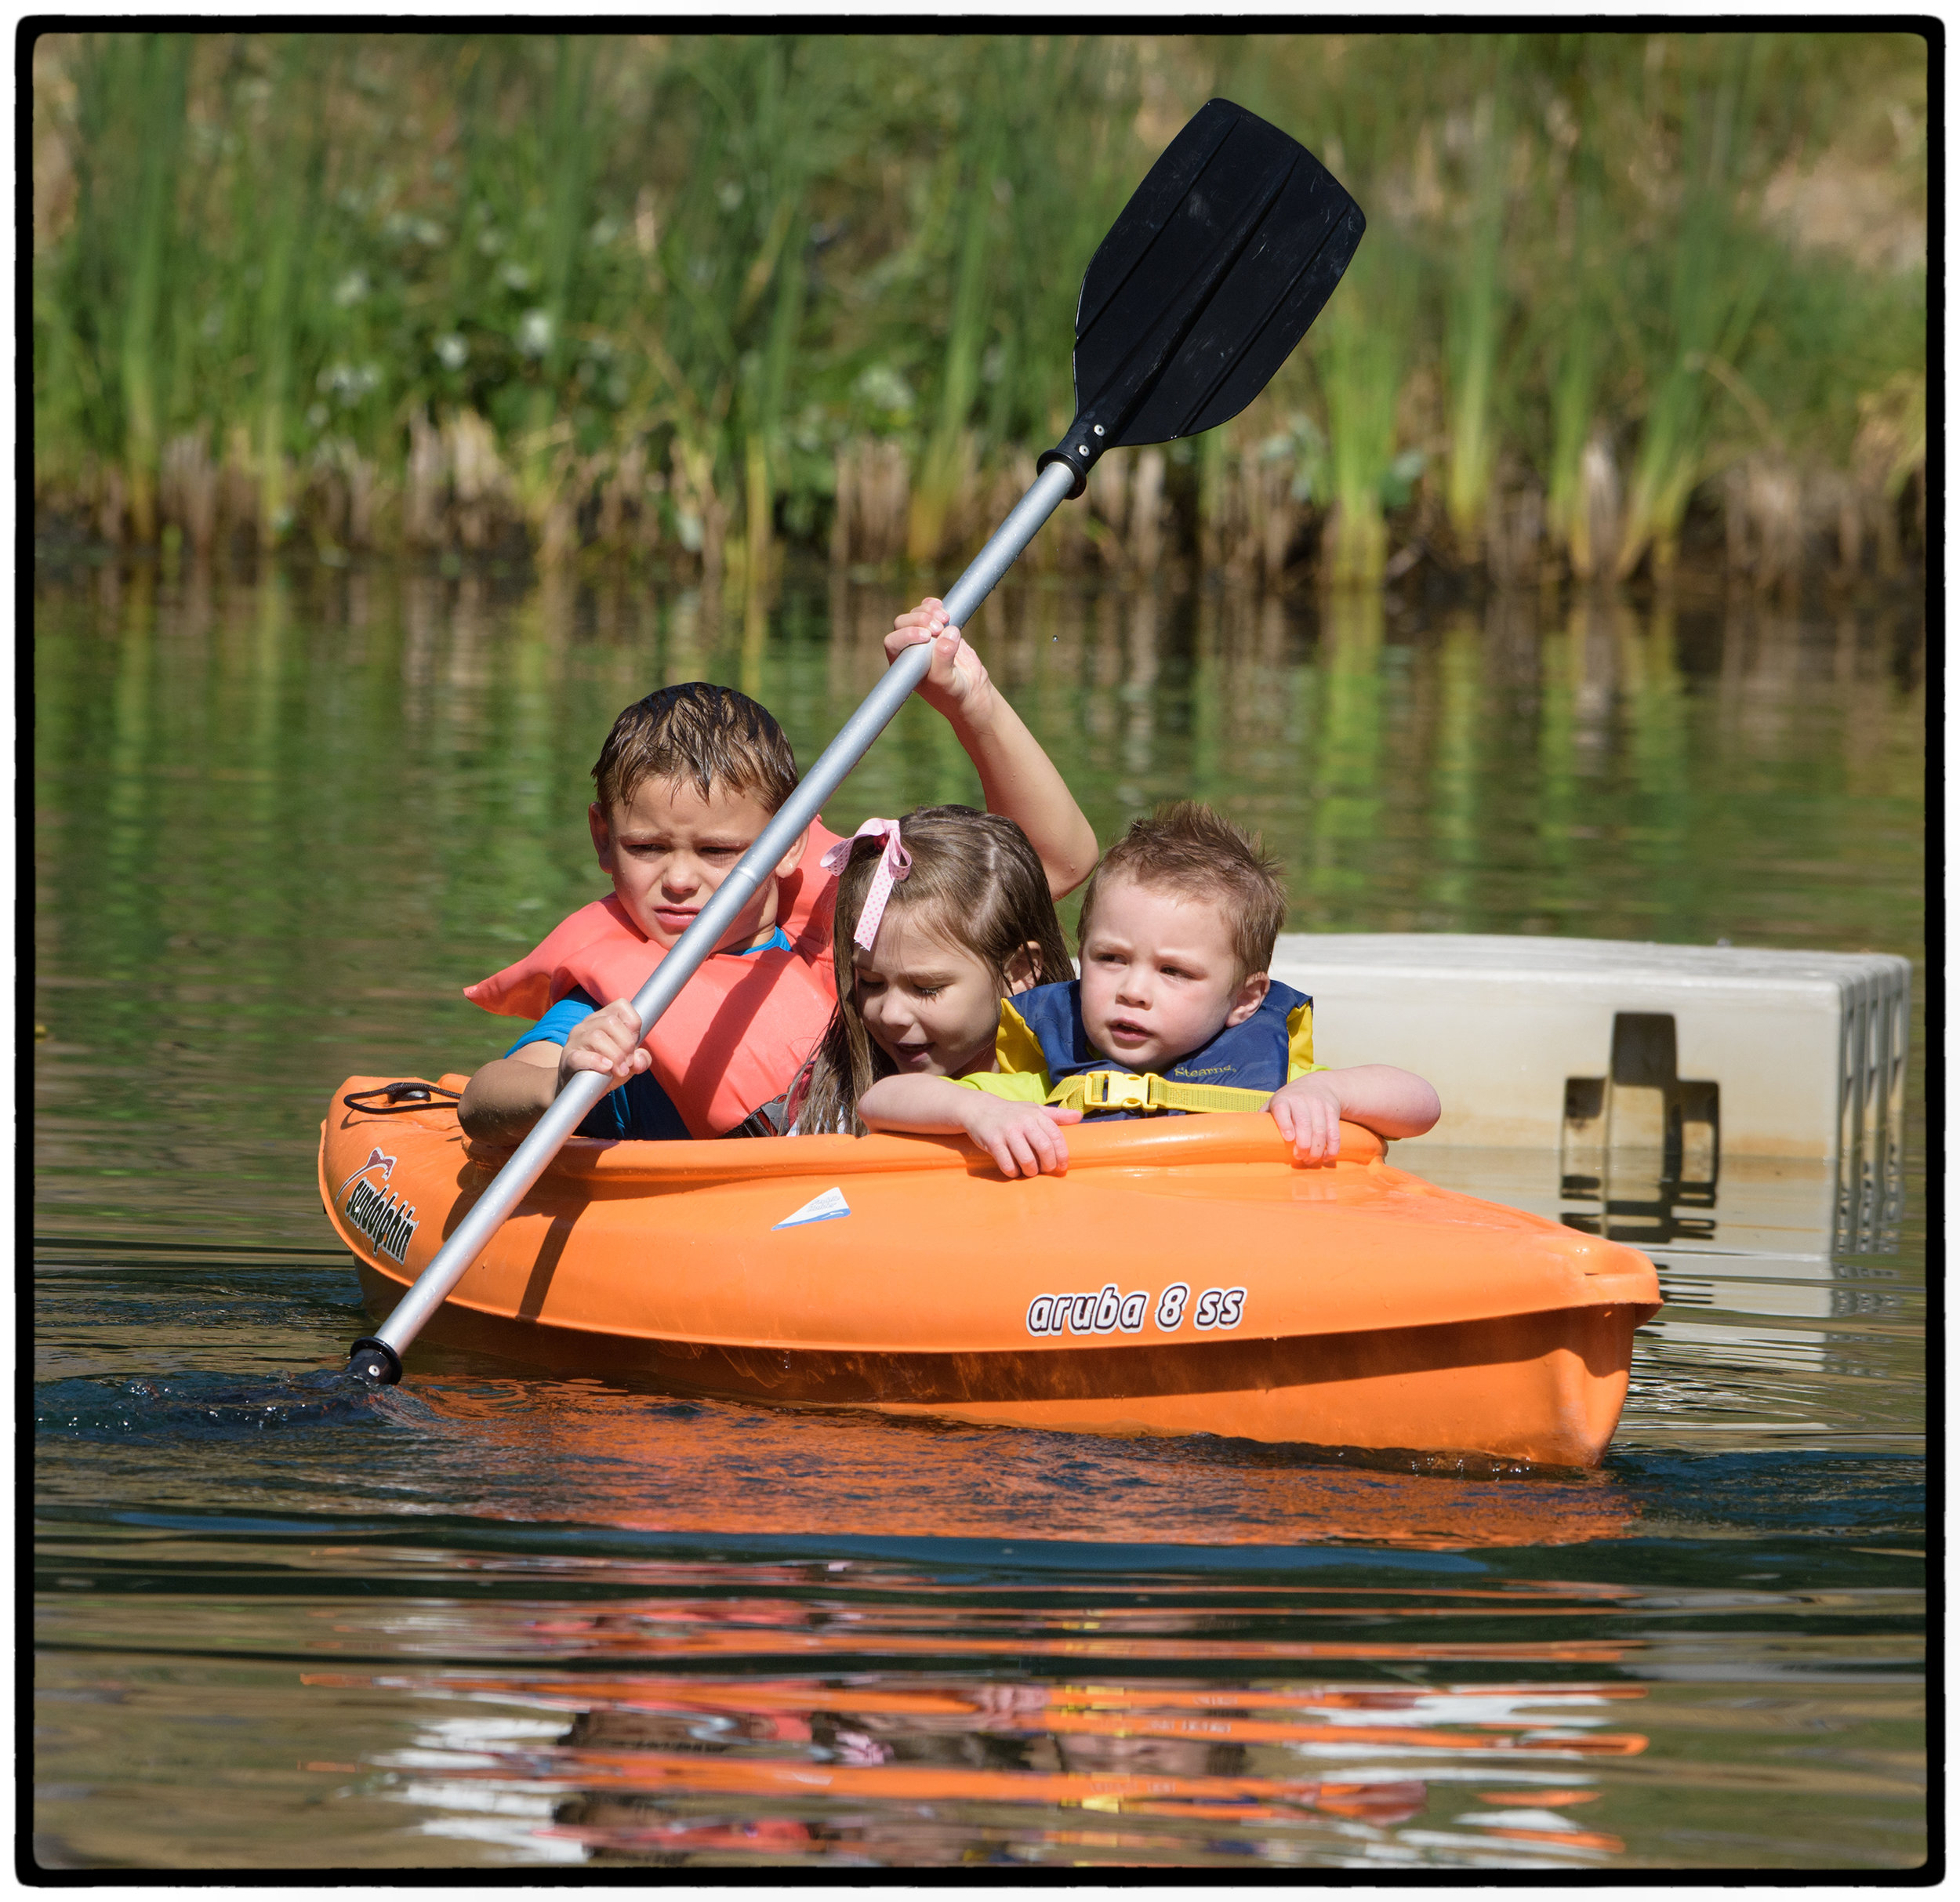 Hawthorn escorts his cousins in a kayak